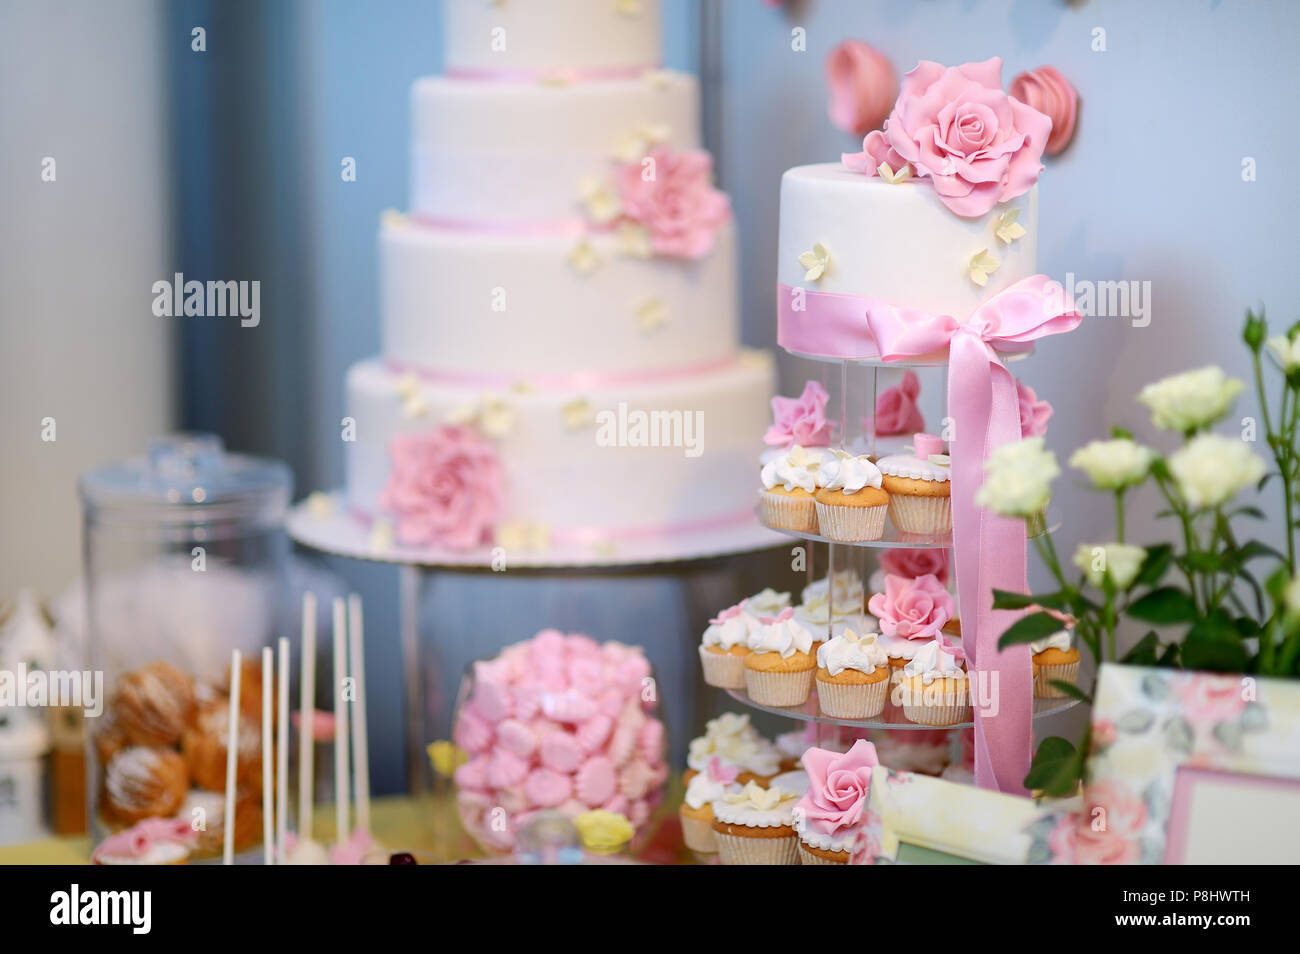 White Wedding Cupcake Cake Decorated With Pink Flowers Stock Photo